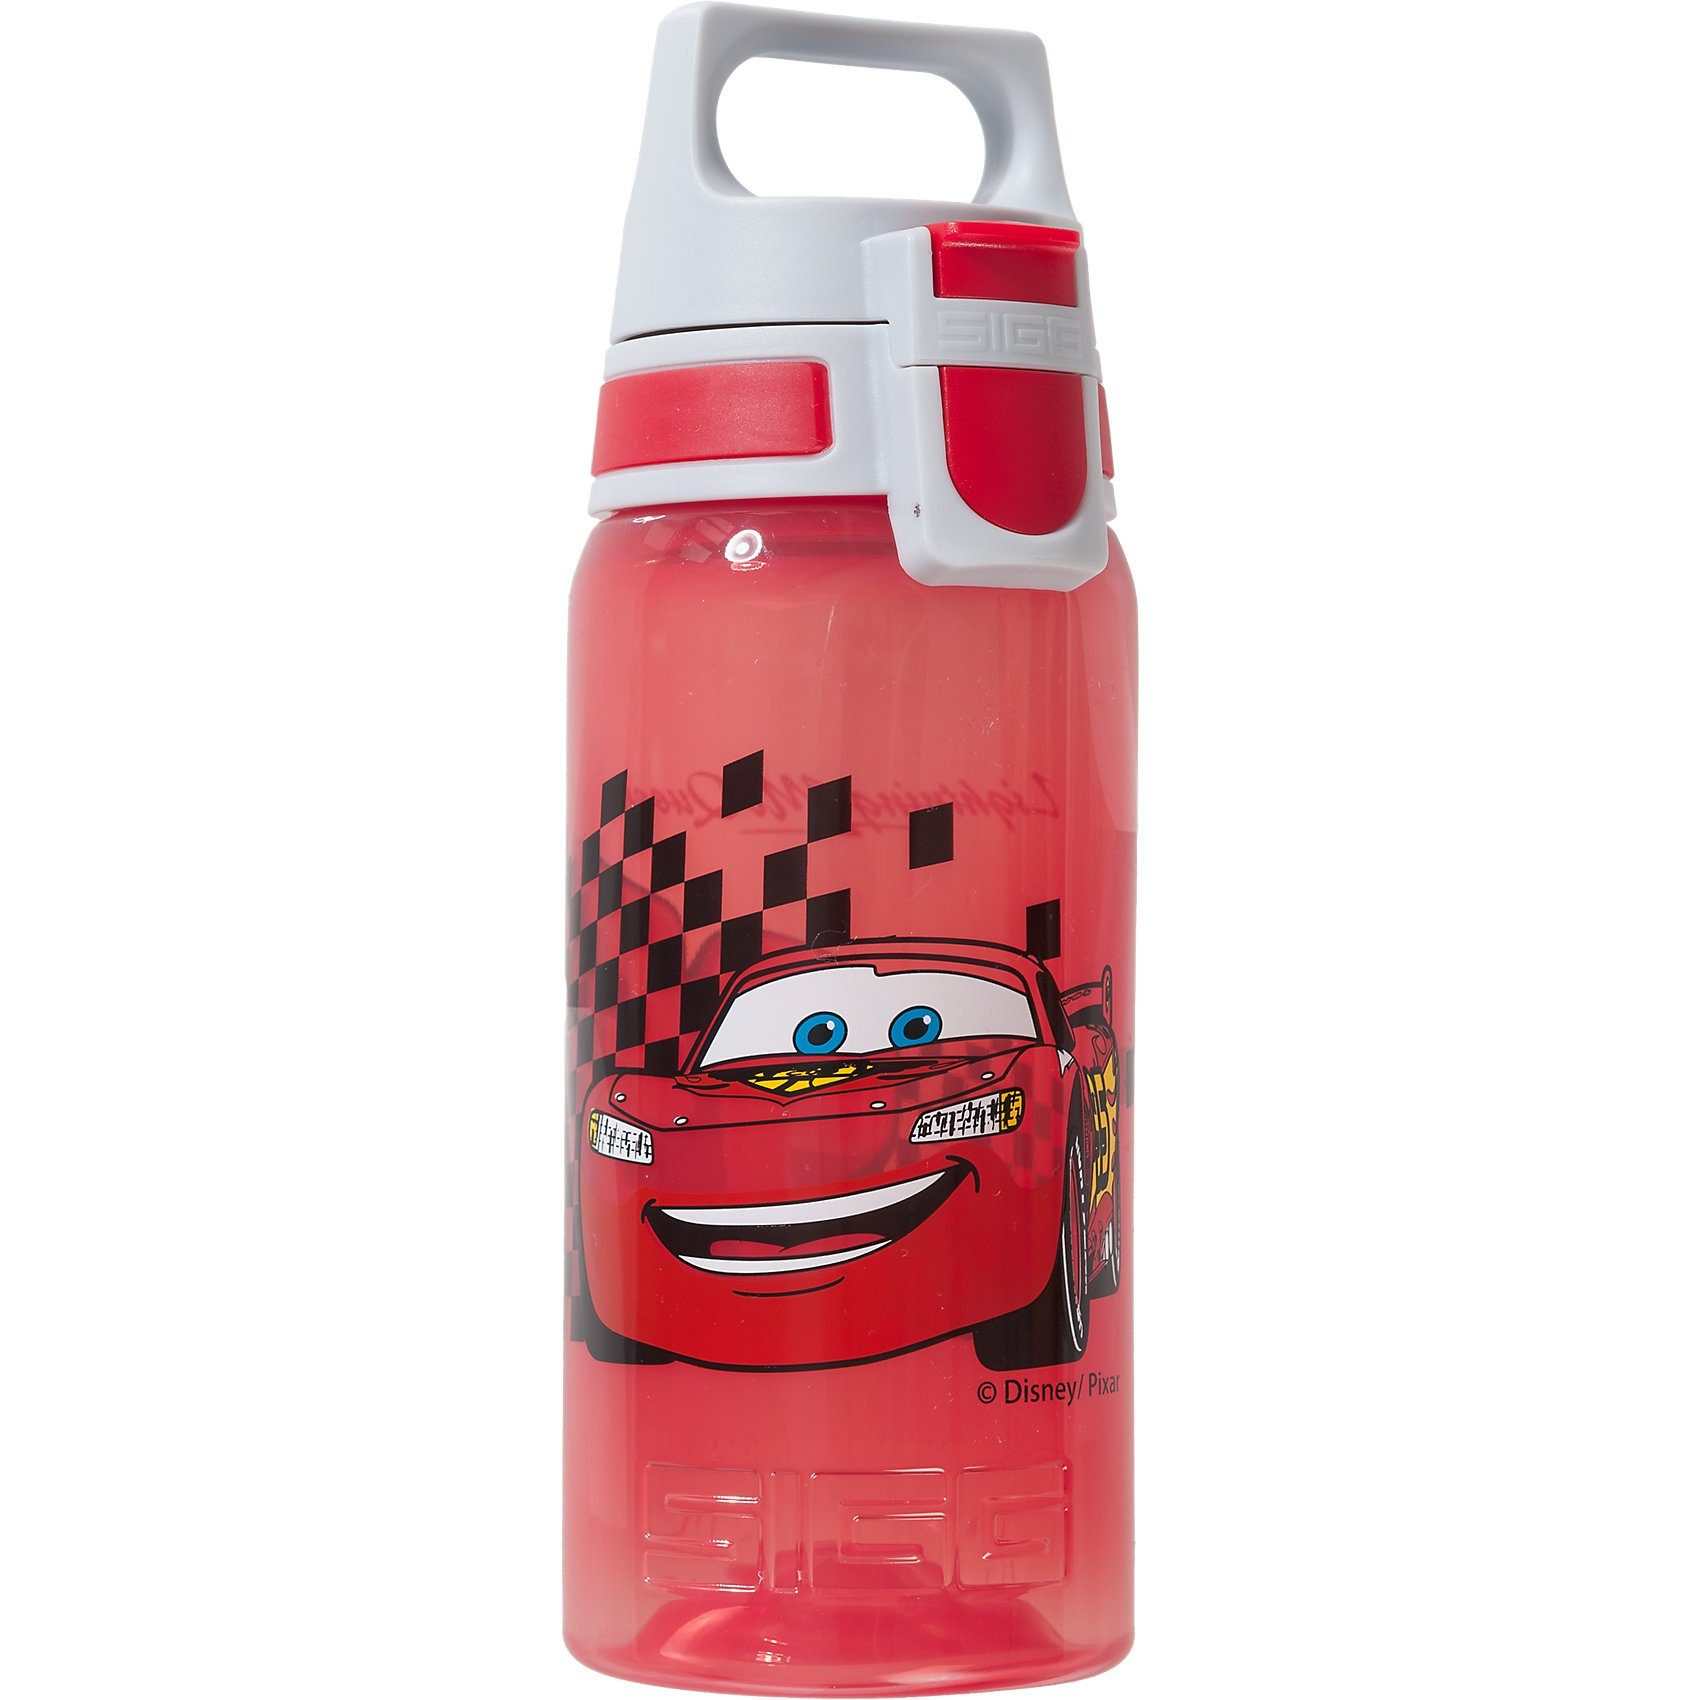 SIGG Trinkflasche VIVA ONE Cars, 500 ml